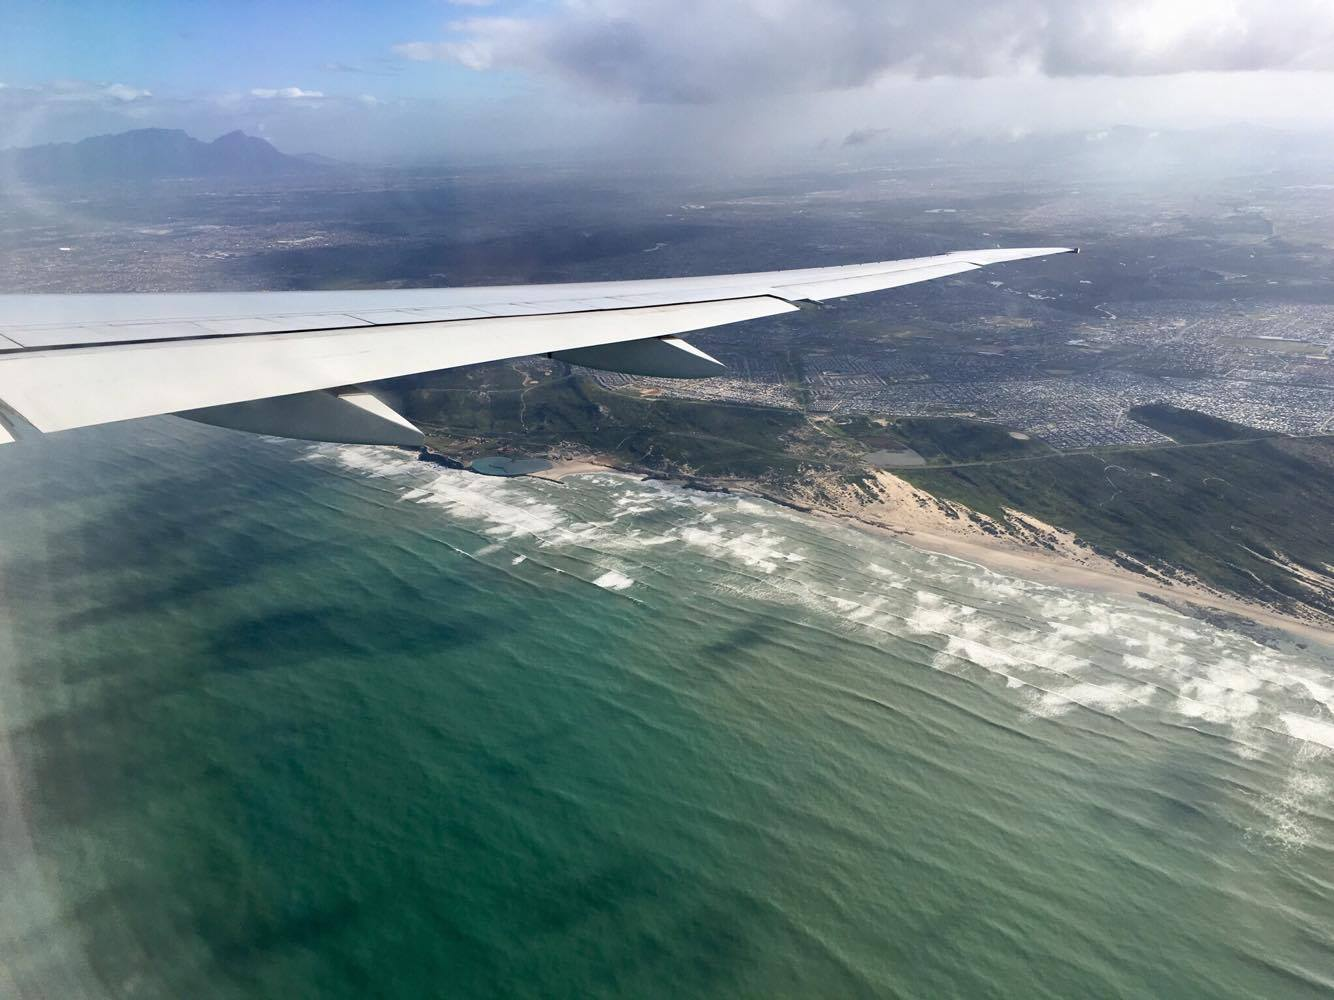 Flying in to the Cape Town airport. Remember that summer in the Northern Hemisphere is 'winter' here, so bring clothes for chilly weather!